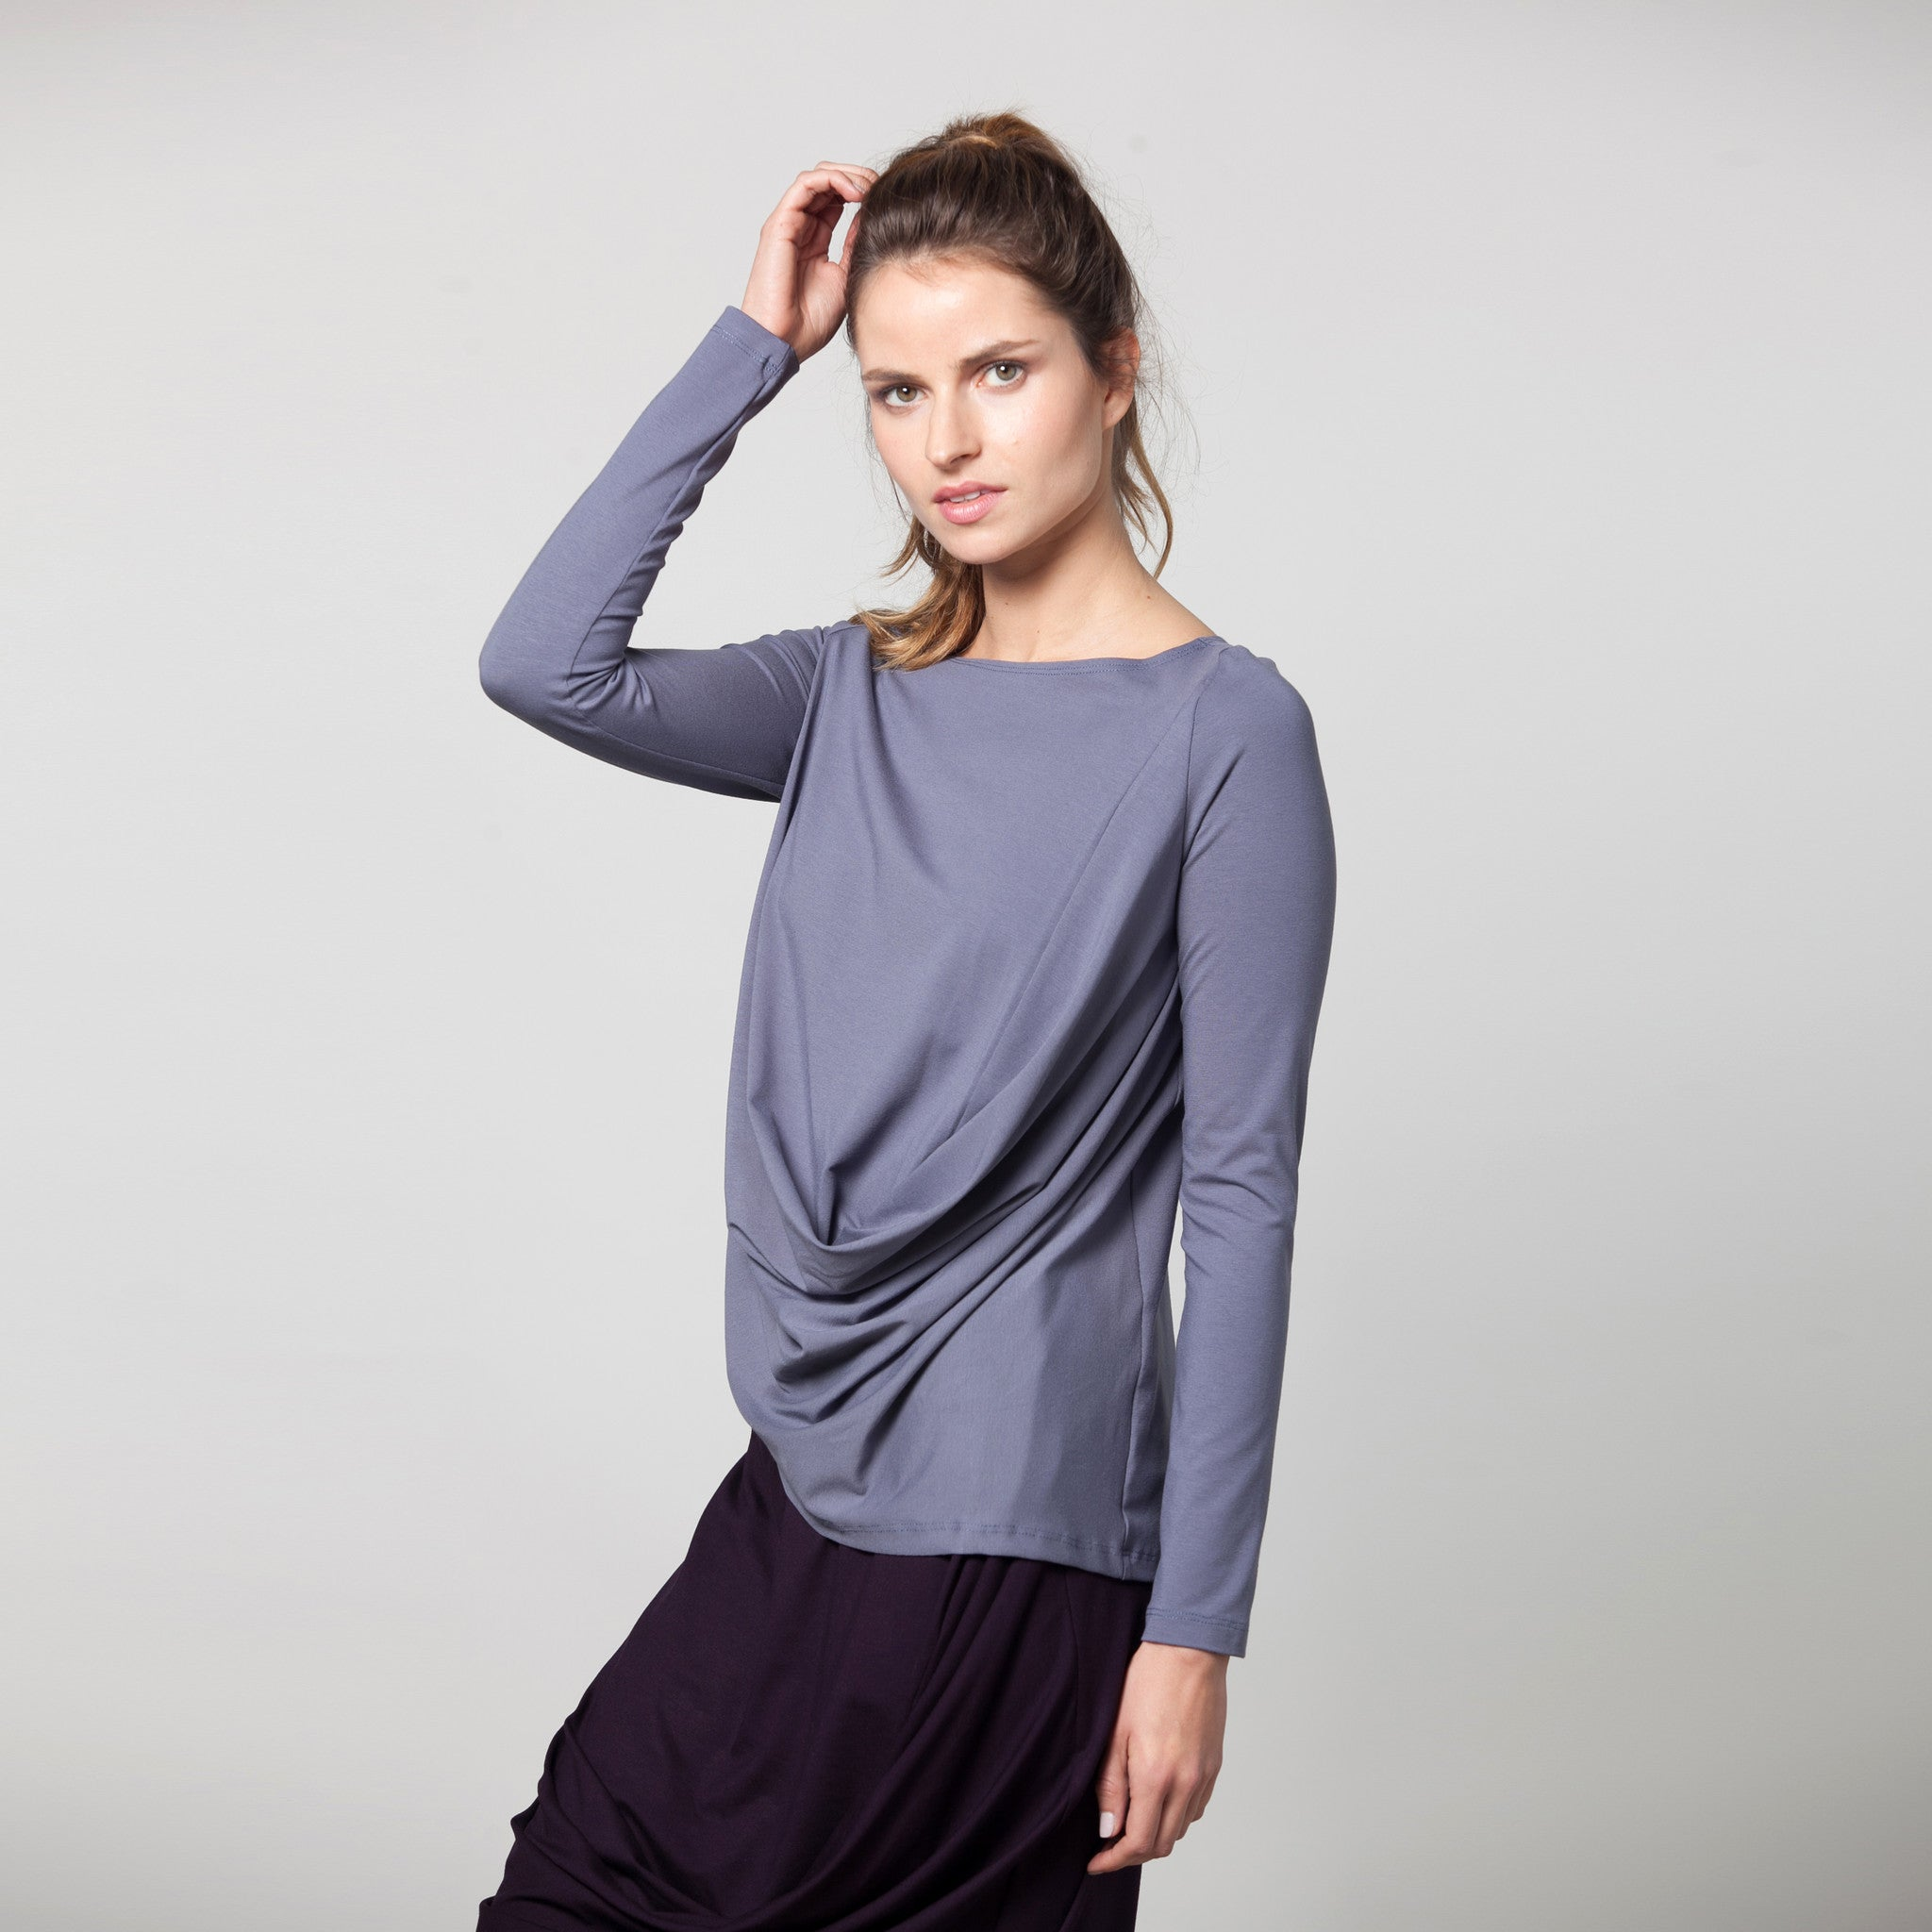 Sample sale- Long sleeve draped jersey top size S color light stone grey - DuendeFashion  - 4